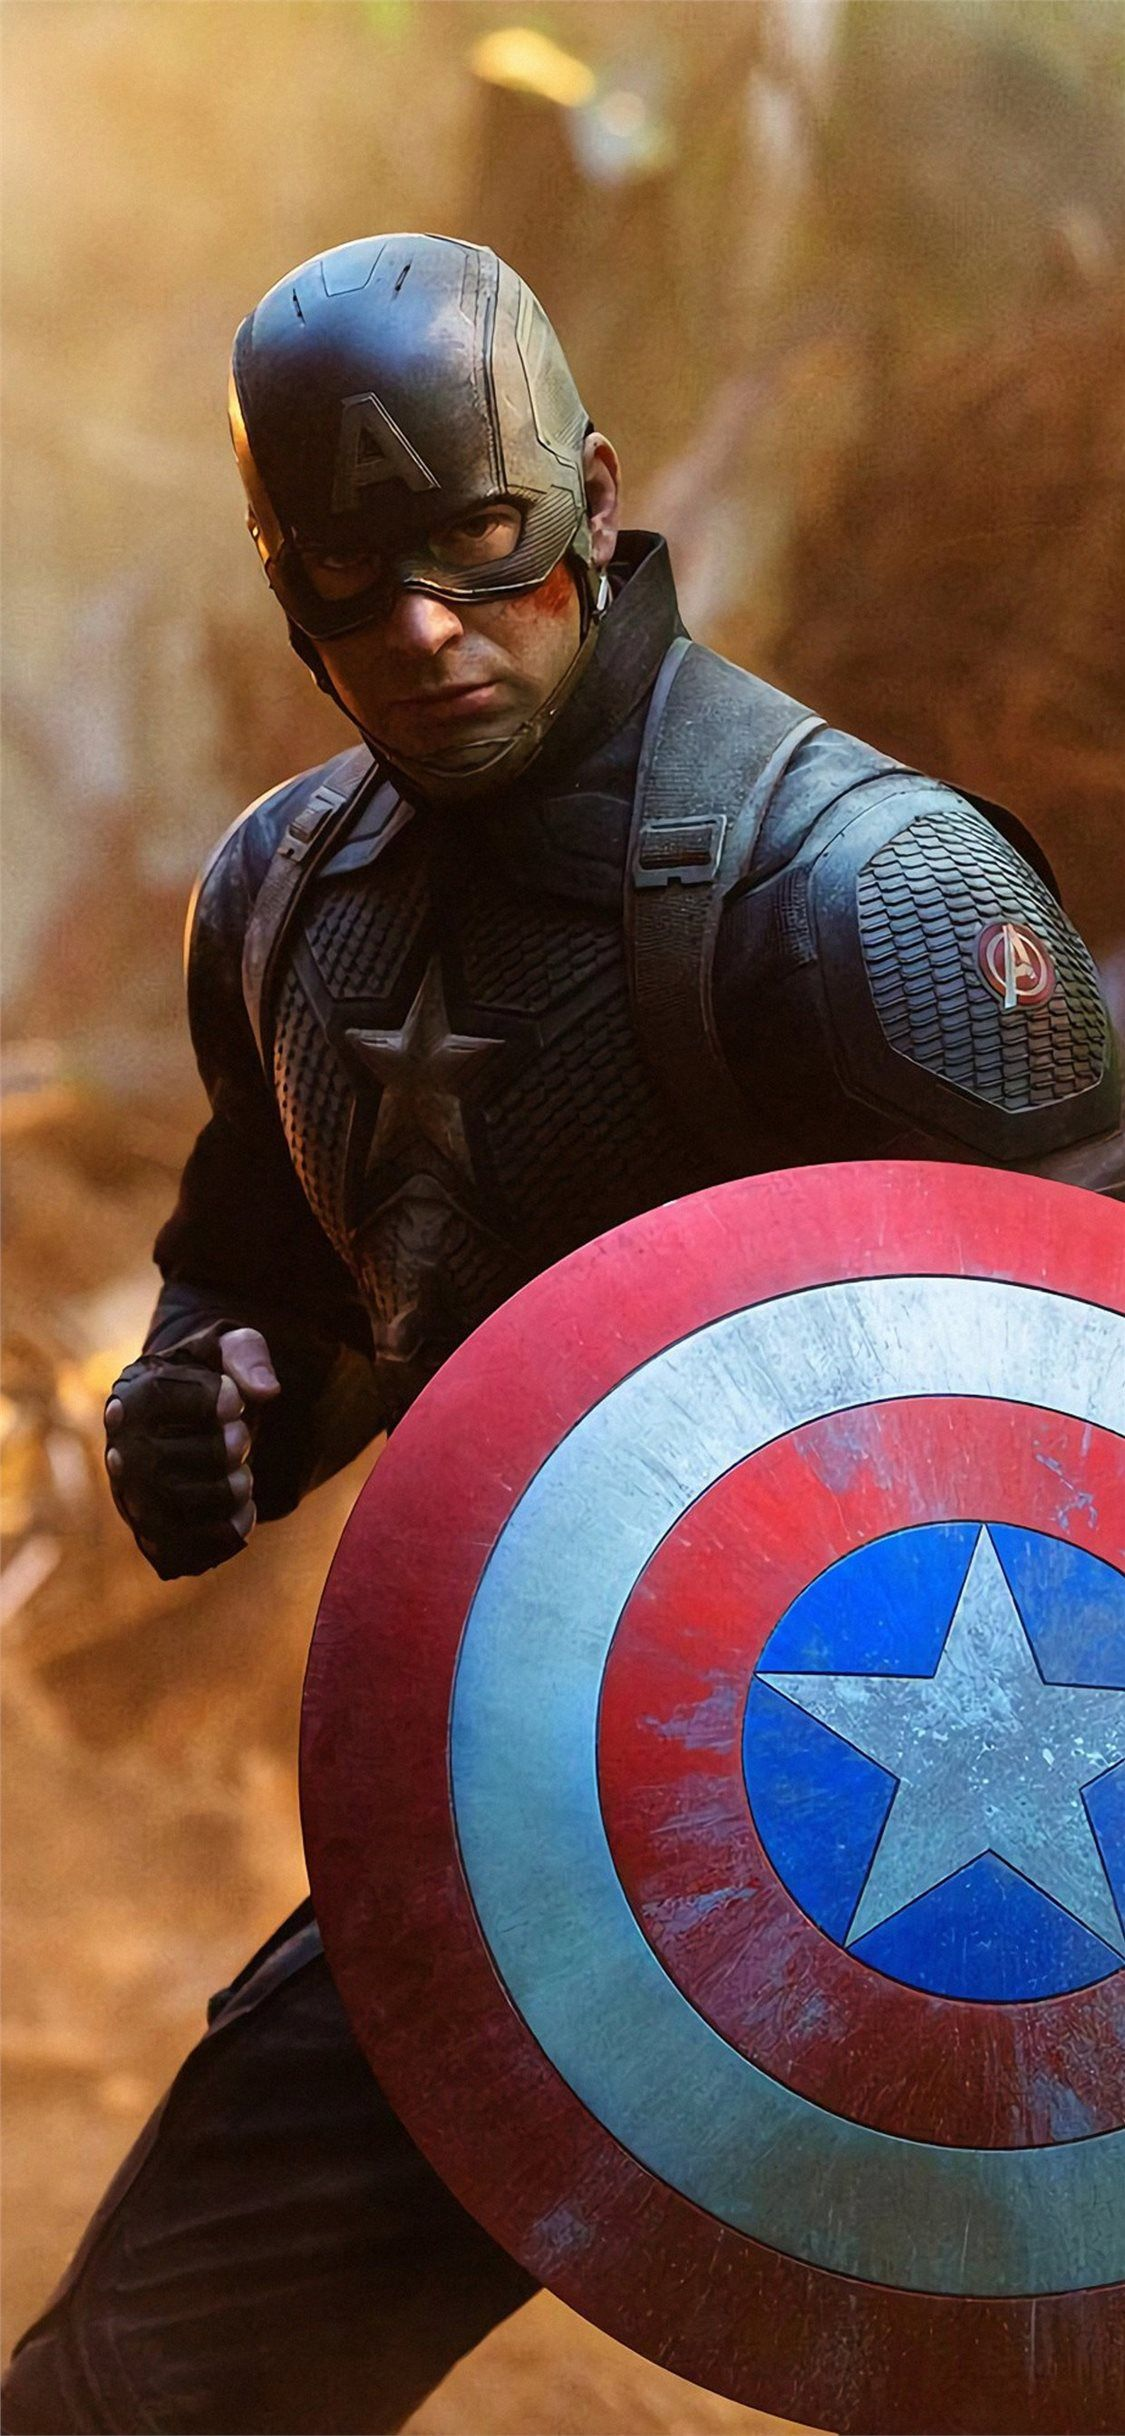 Captain America Avengers Endgame Movie Wallpaper Captain America Wallpaper Captain America Drawing Captain America Art